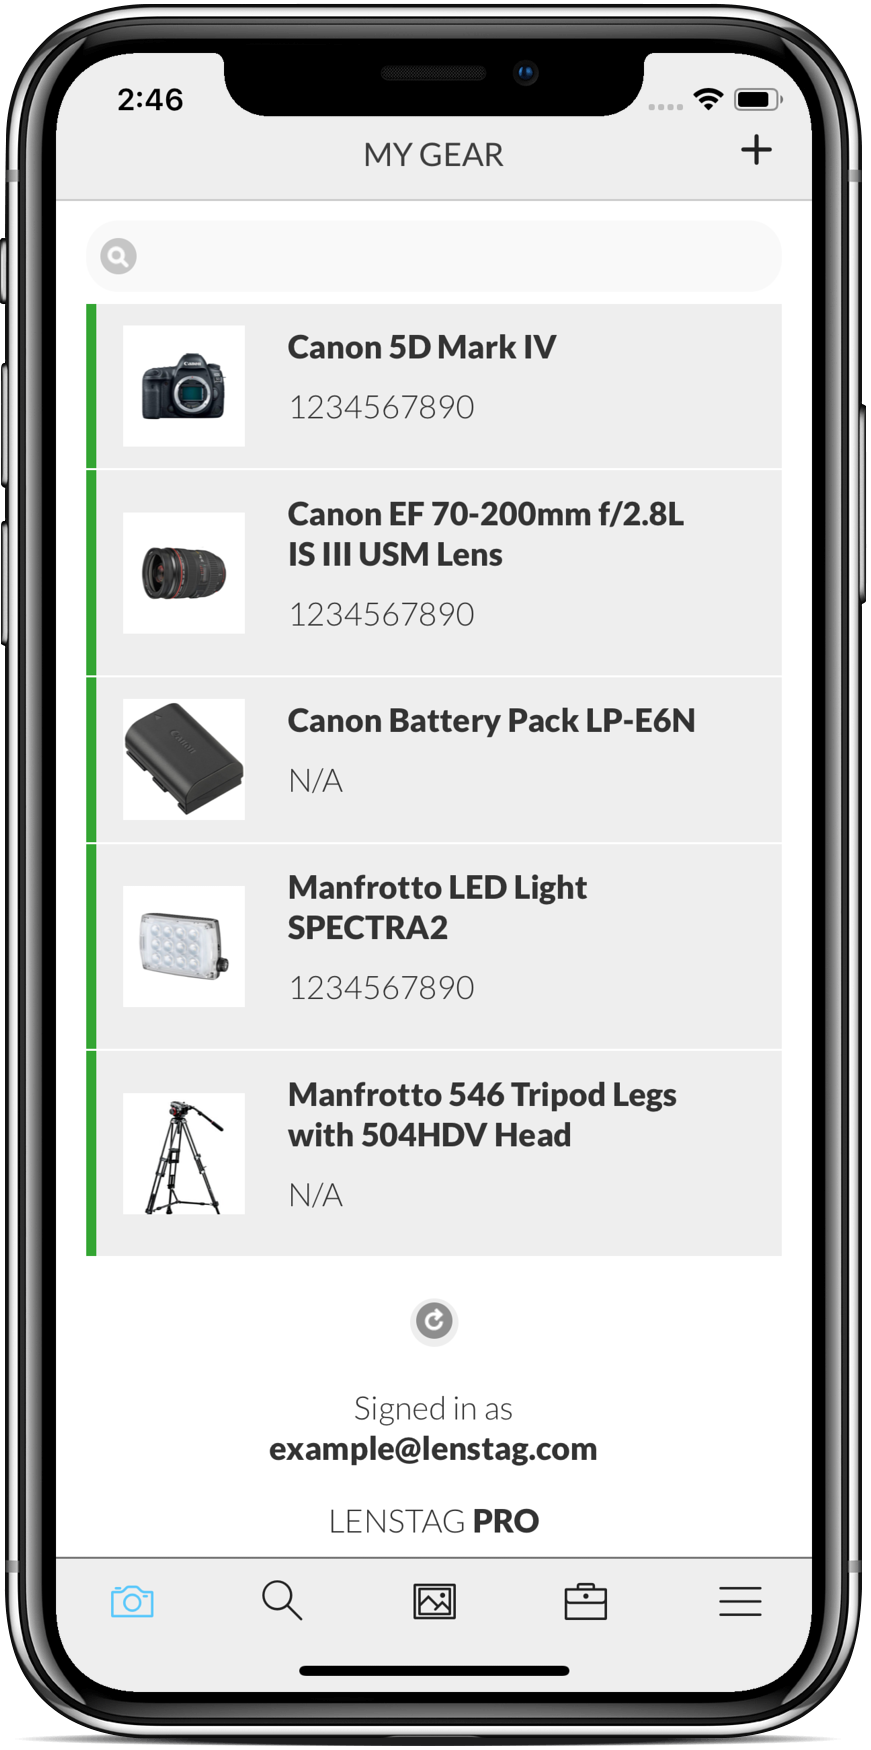 Lenstag - Protect your camera equipment, images and help